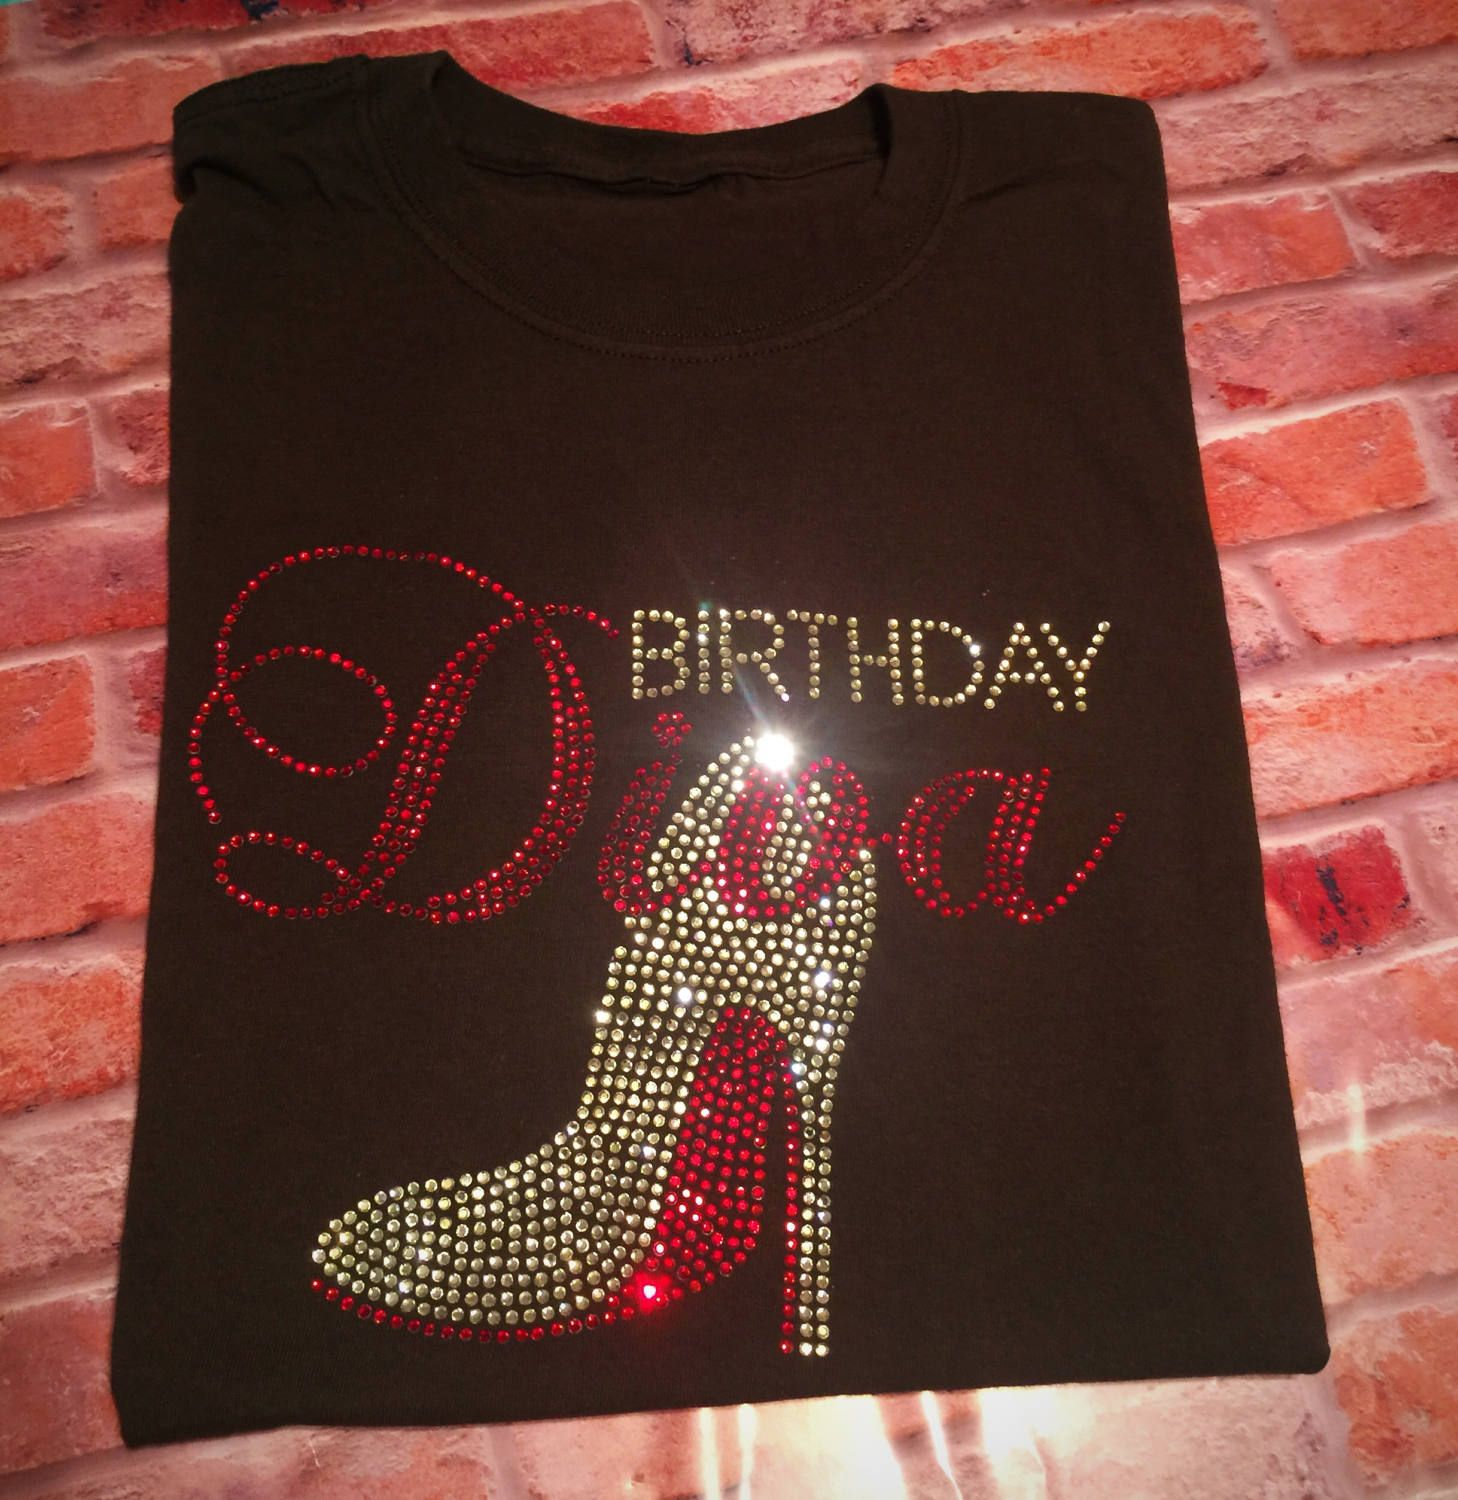 4b46f30b0 Women's Birthday Diva Shirt, Women's Birthday Tshirt, Birthday tees,  Rhinestone Birthday Bling, Squad Goals, Gifts for wife, Diva by  TheKnottyKrafter on ...